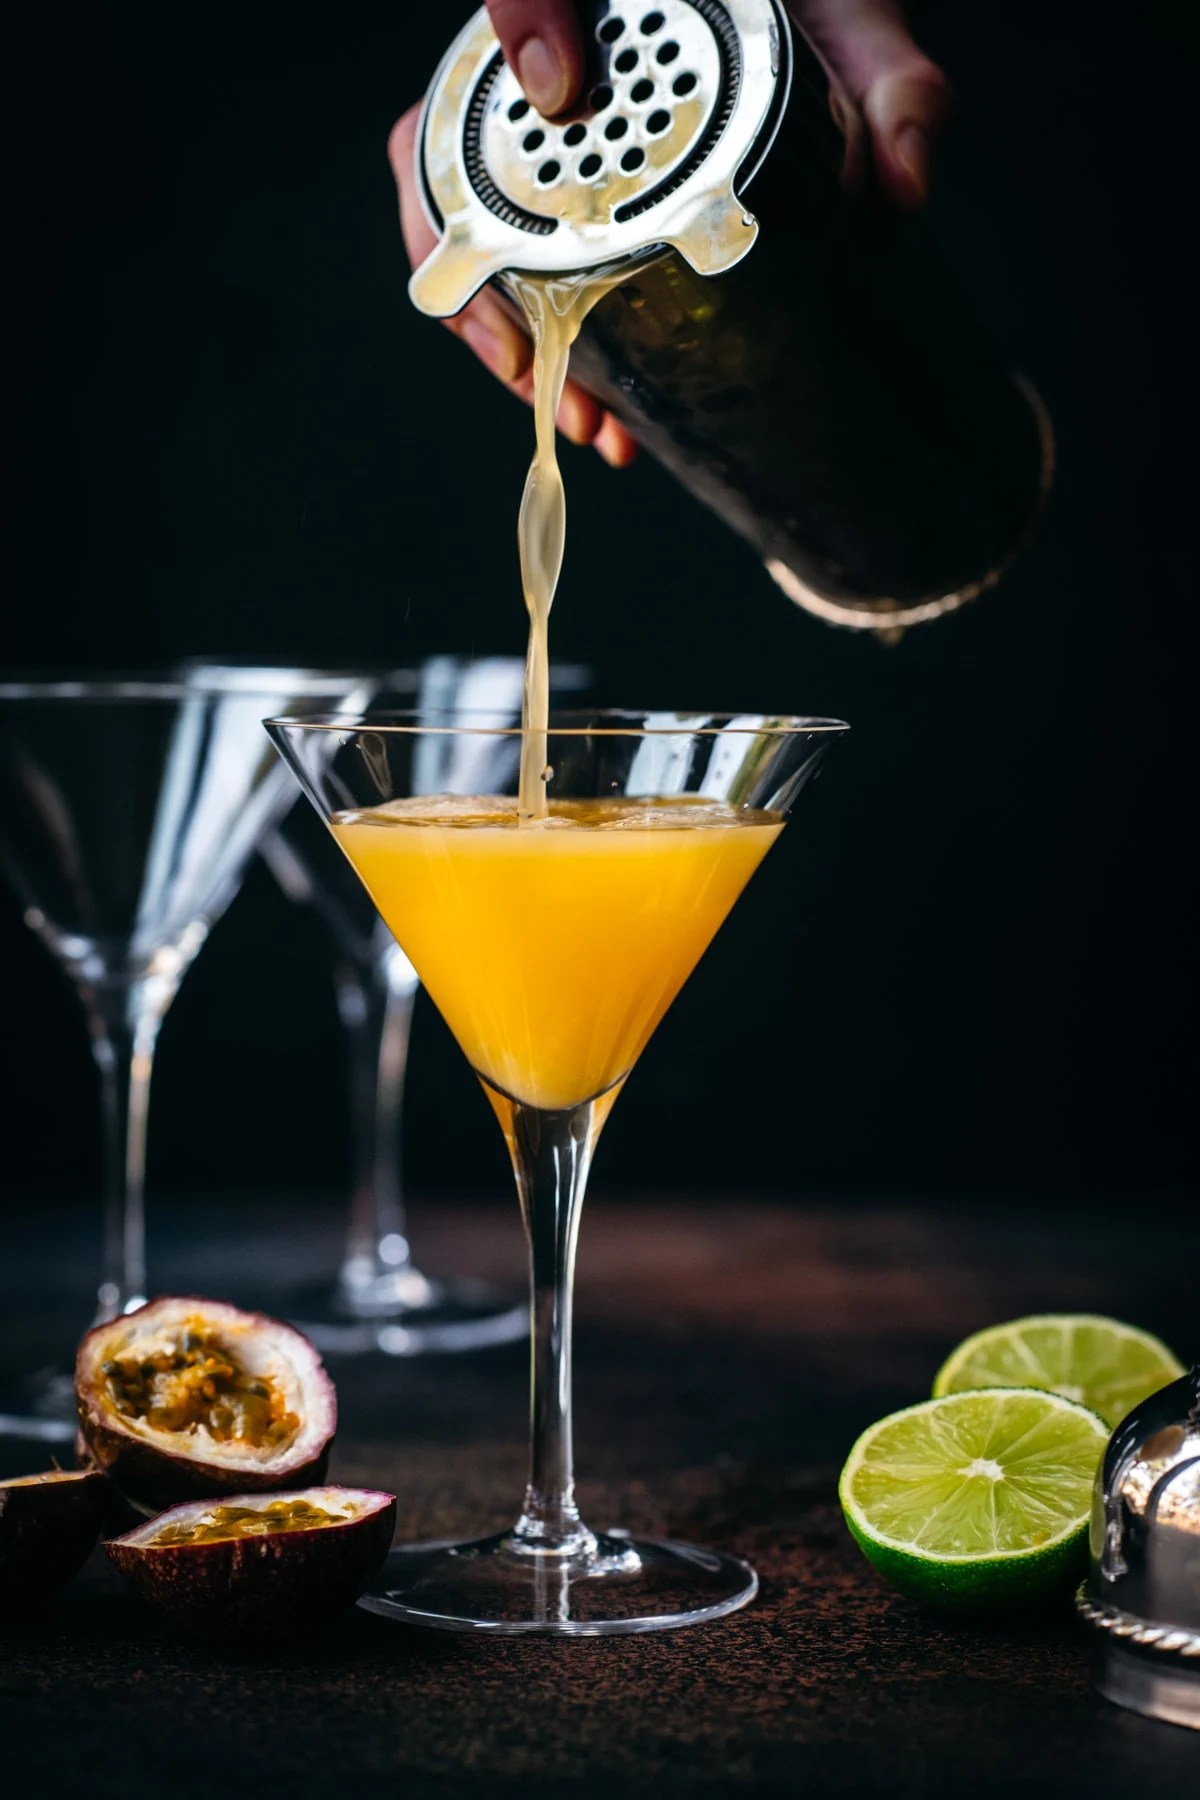 Pouring passion fruit martini into a glass from cocktail shaker.